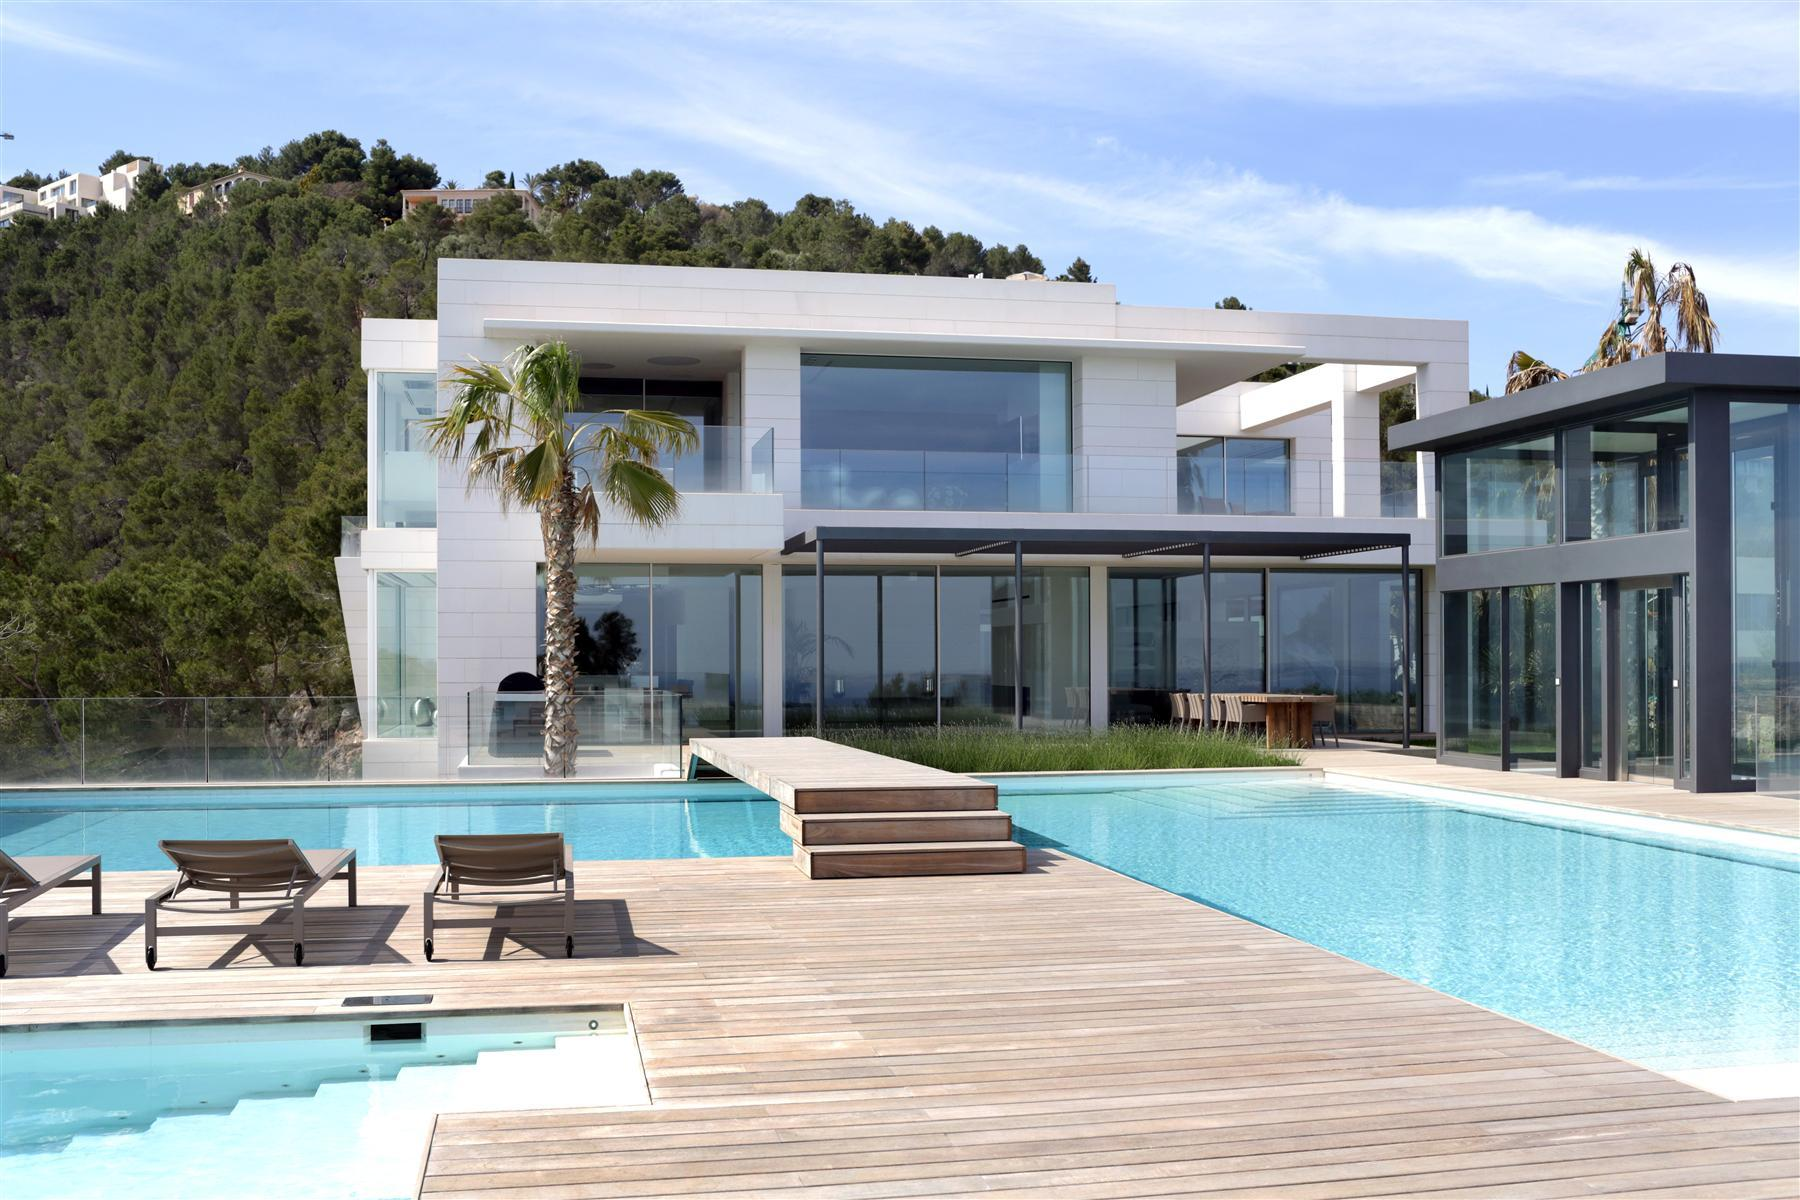 The Unique Chameleon Mansion in Son Vida, Mallorca 4